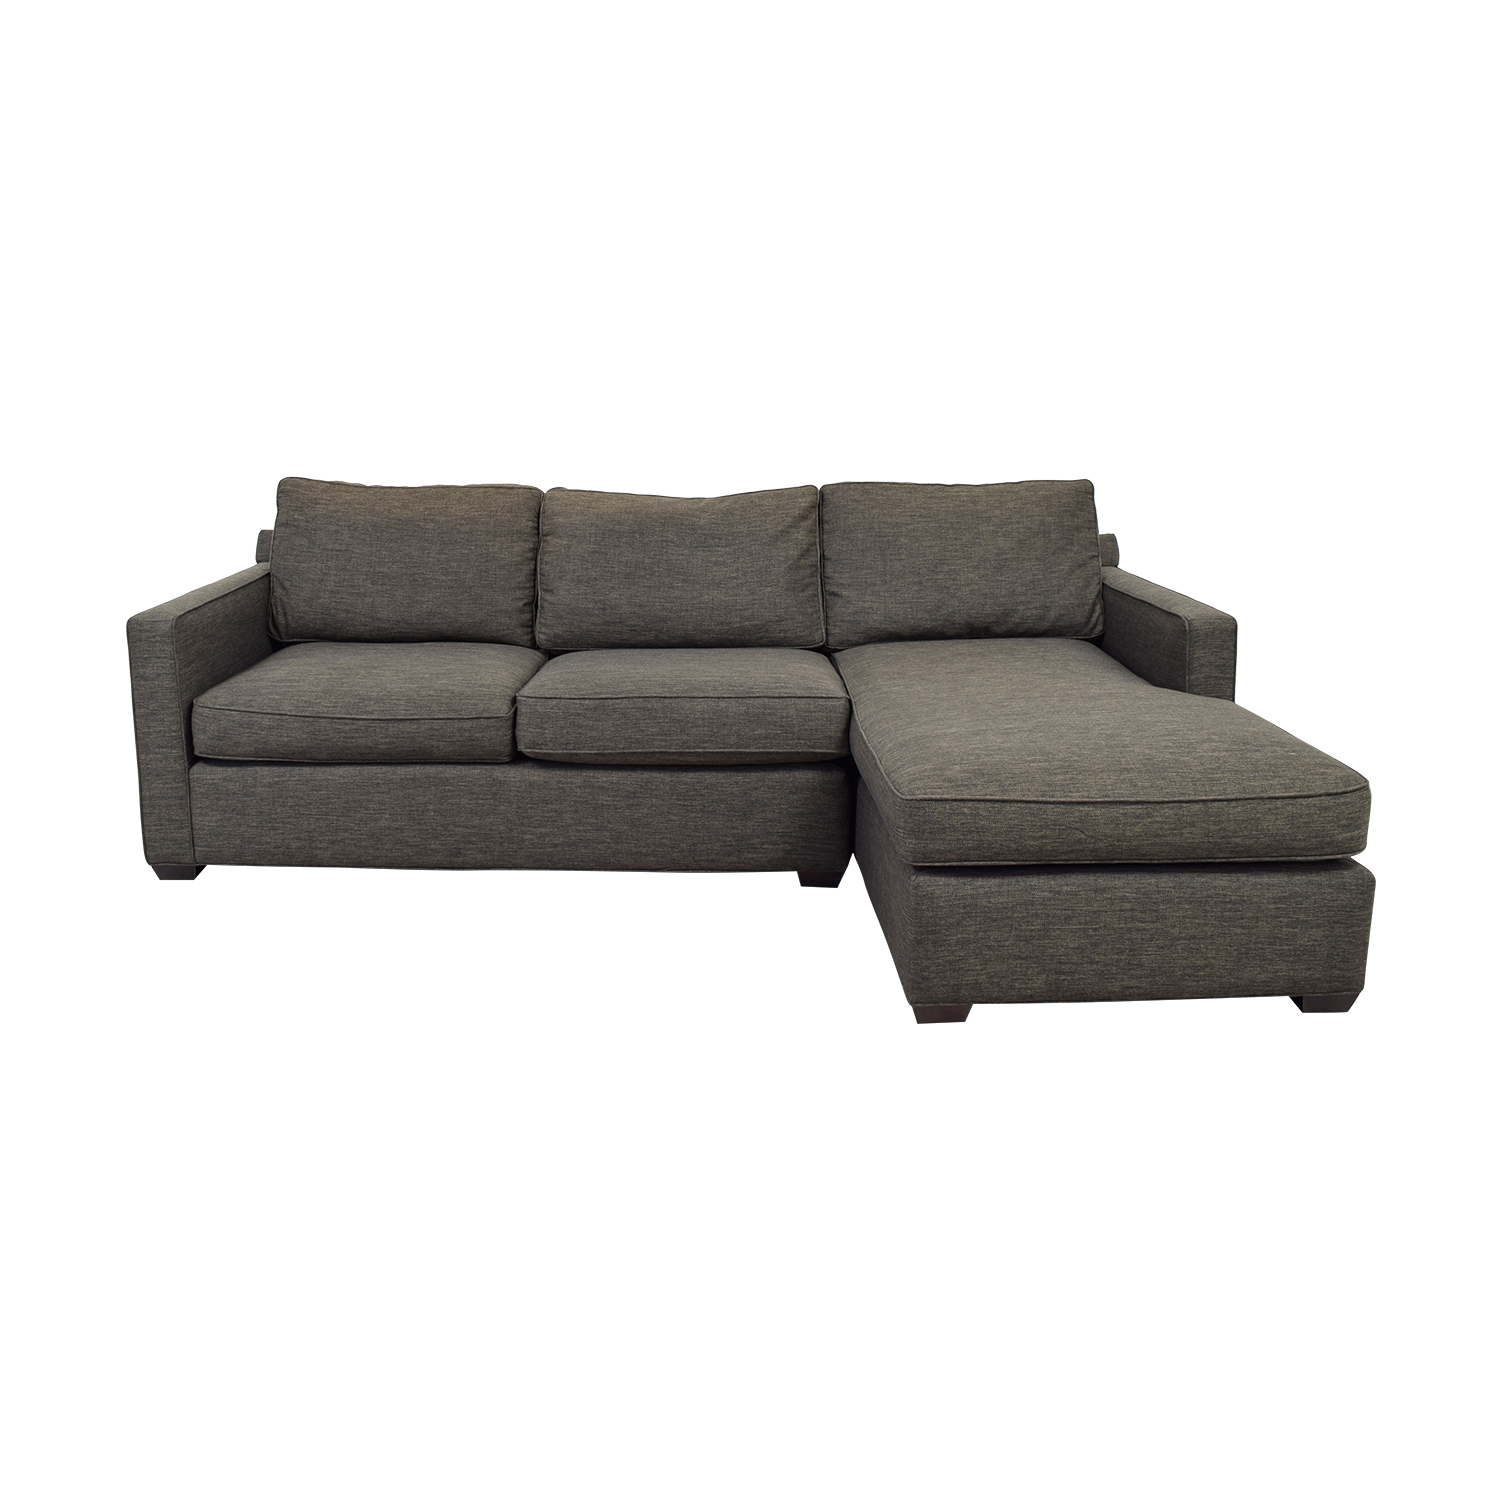 buy Crate & Barrel Davis Three Seat Lounger Sectional Sofa Crate & Barrel Sofas